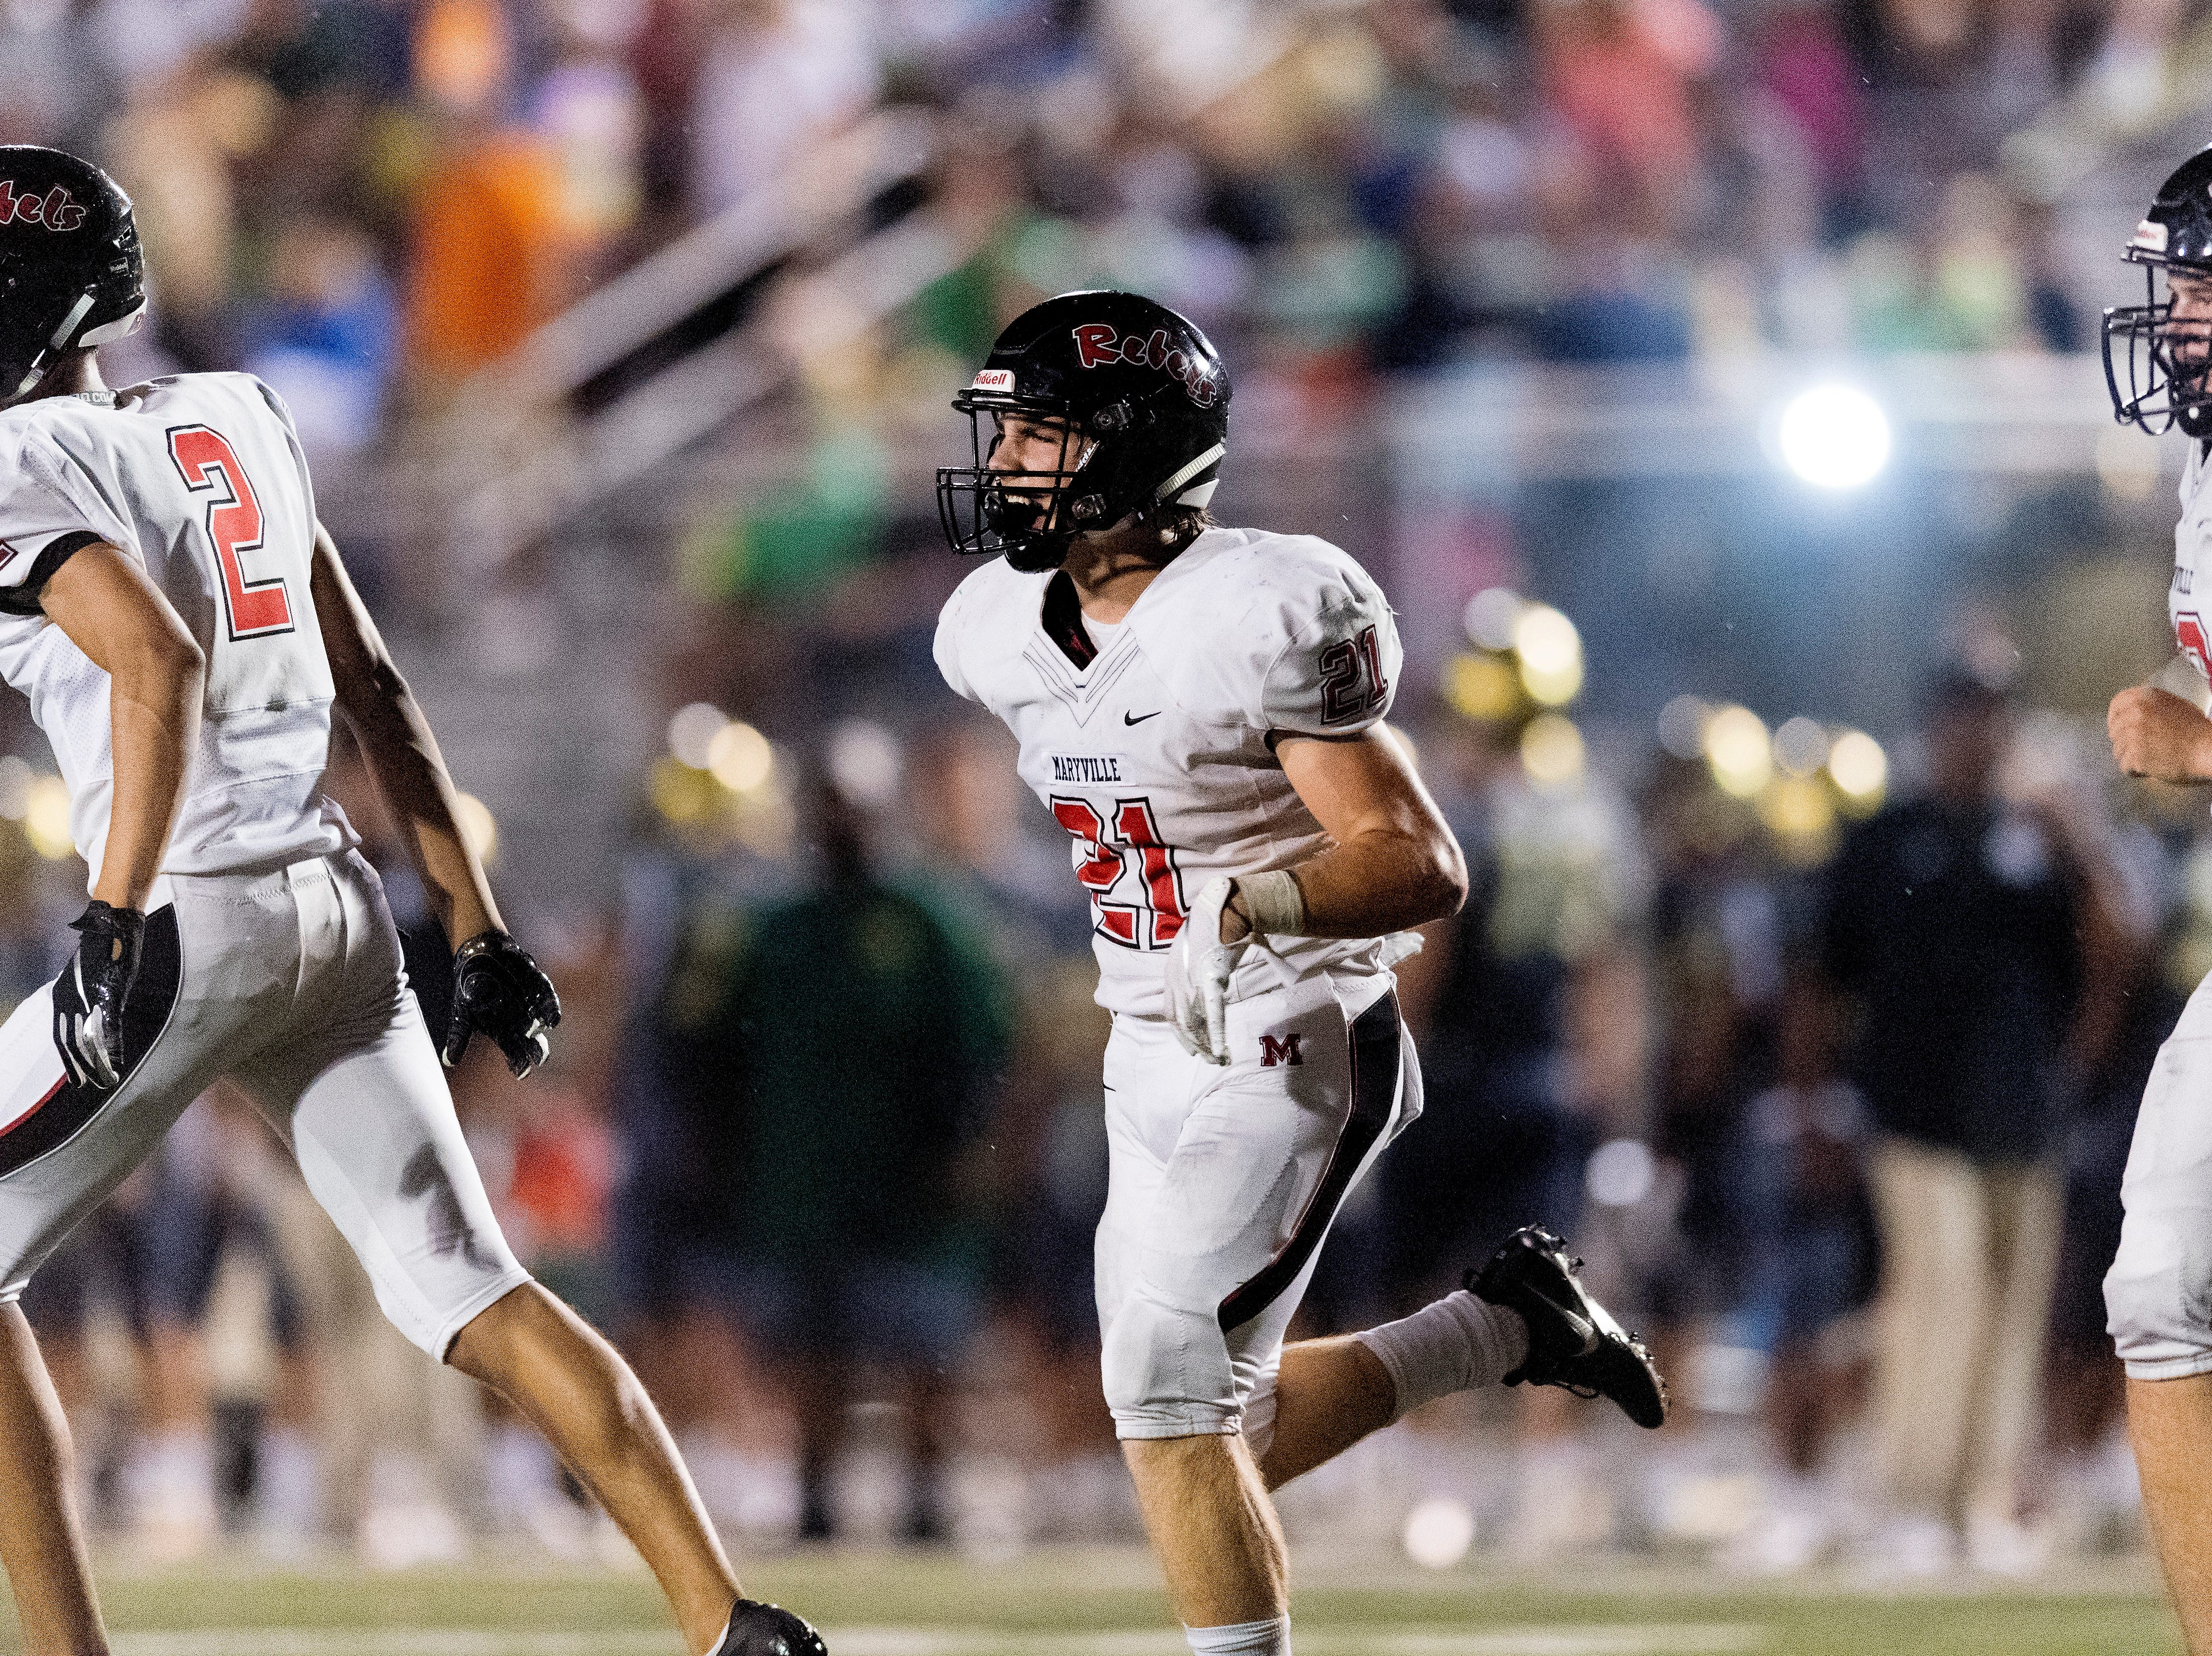 Maryville's Bryson Teffeteller (21) reacts after scoring a touchdown during a football game between Maryville and Catholic at Catholic High School in Knoxville, Tennessee on Friday, August 17, 2018.